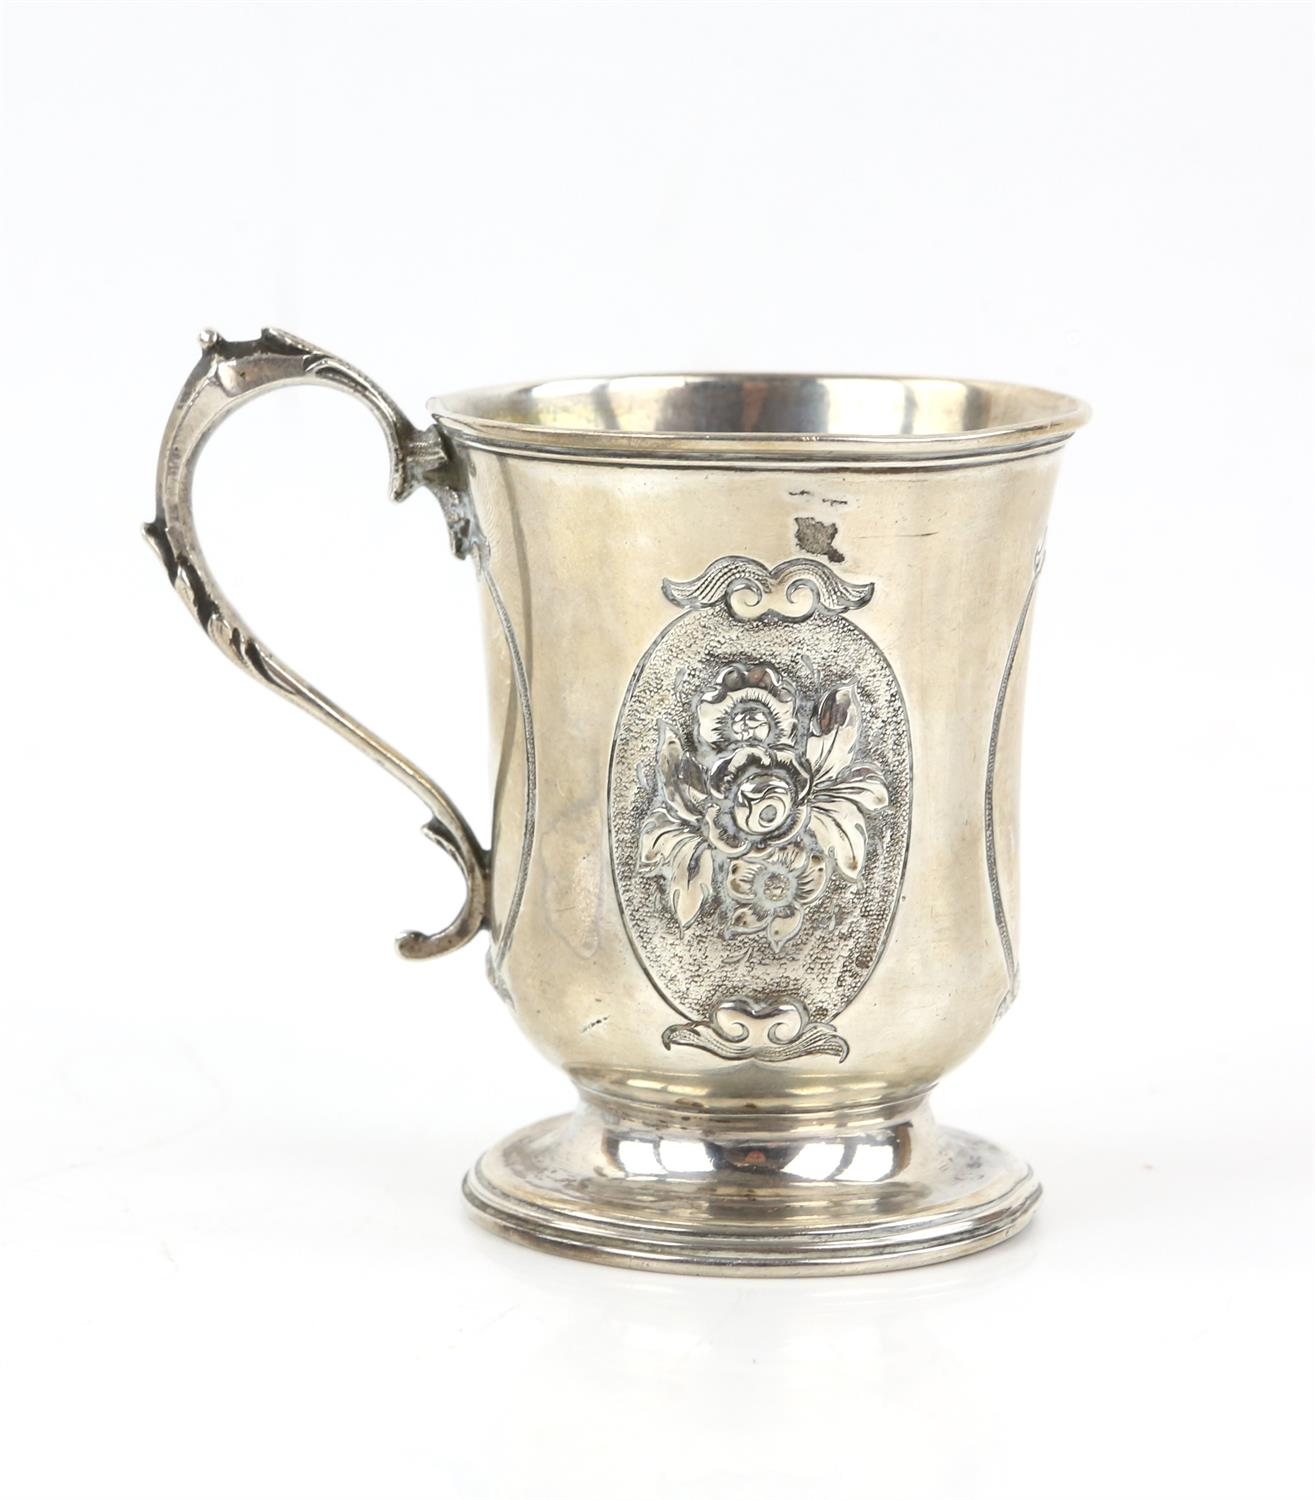 Victorian silver panelled cup/mug the two side panels embossed with a floral design and front panel